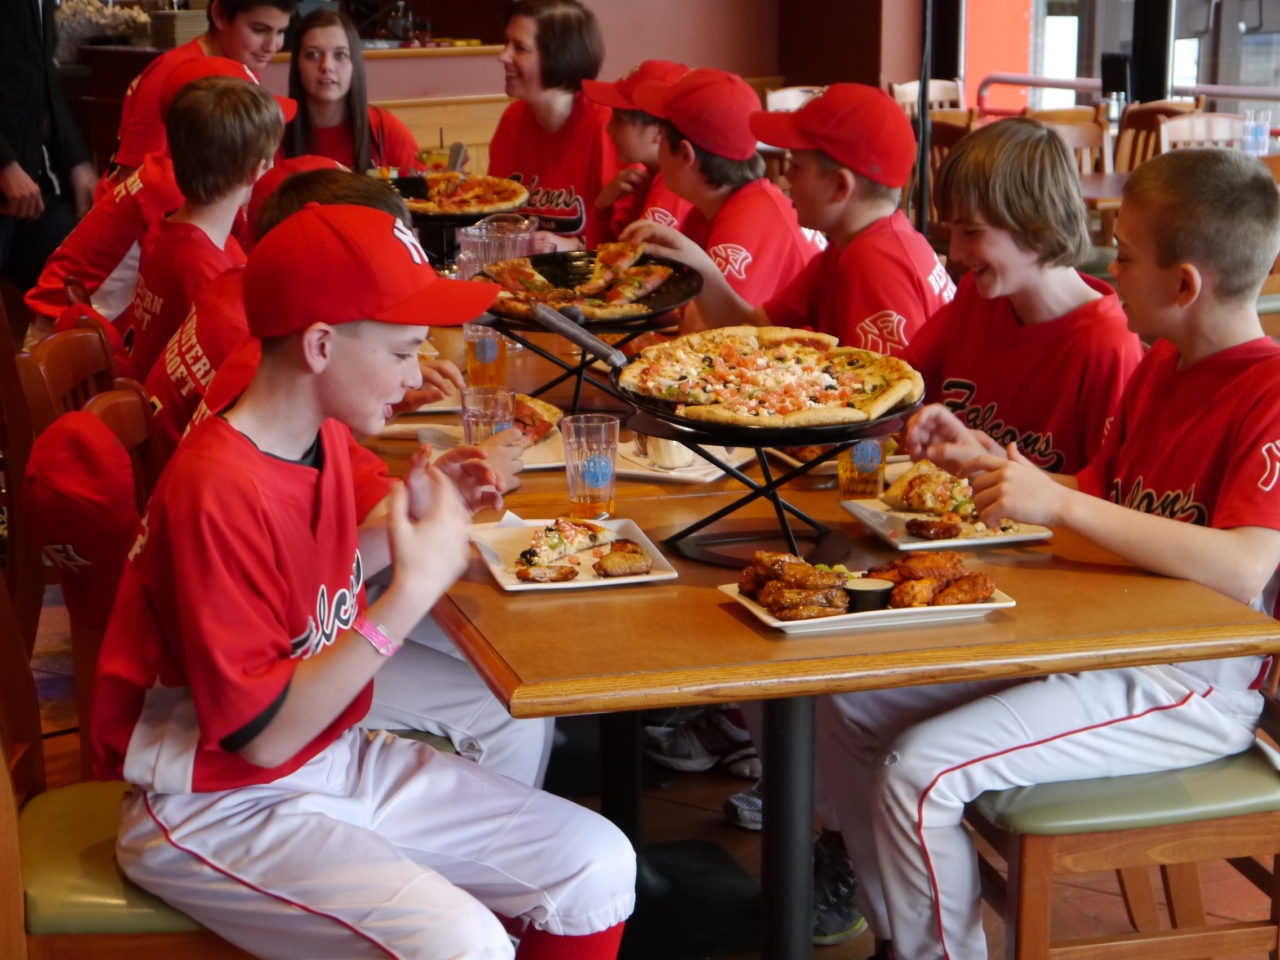 Boston Pizza Clifton Hill Offers Great Packages For Parties!